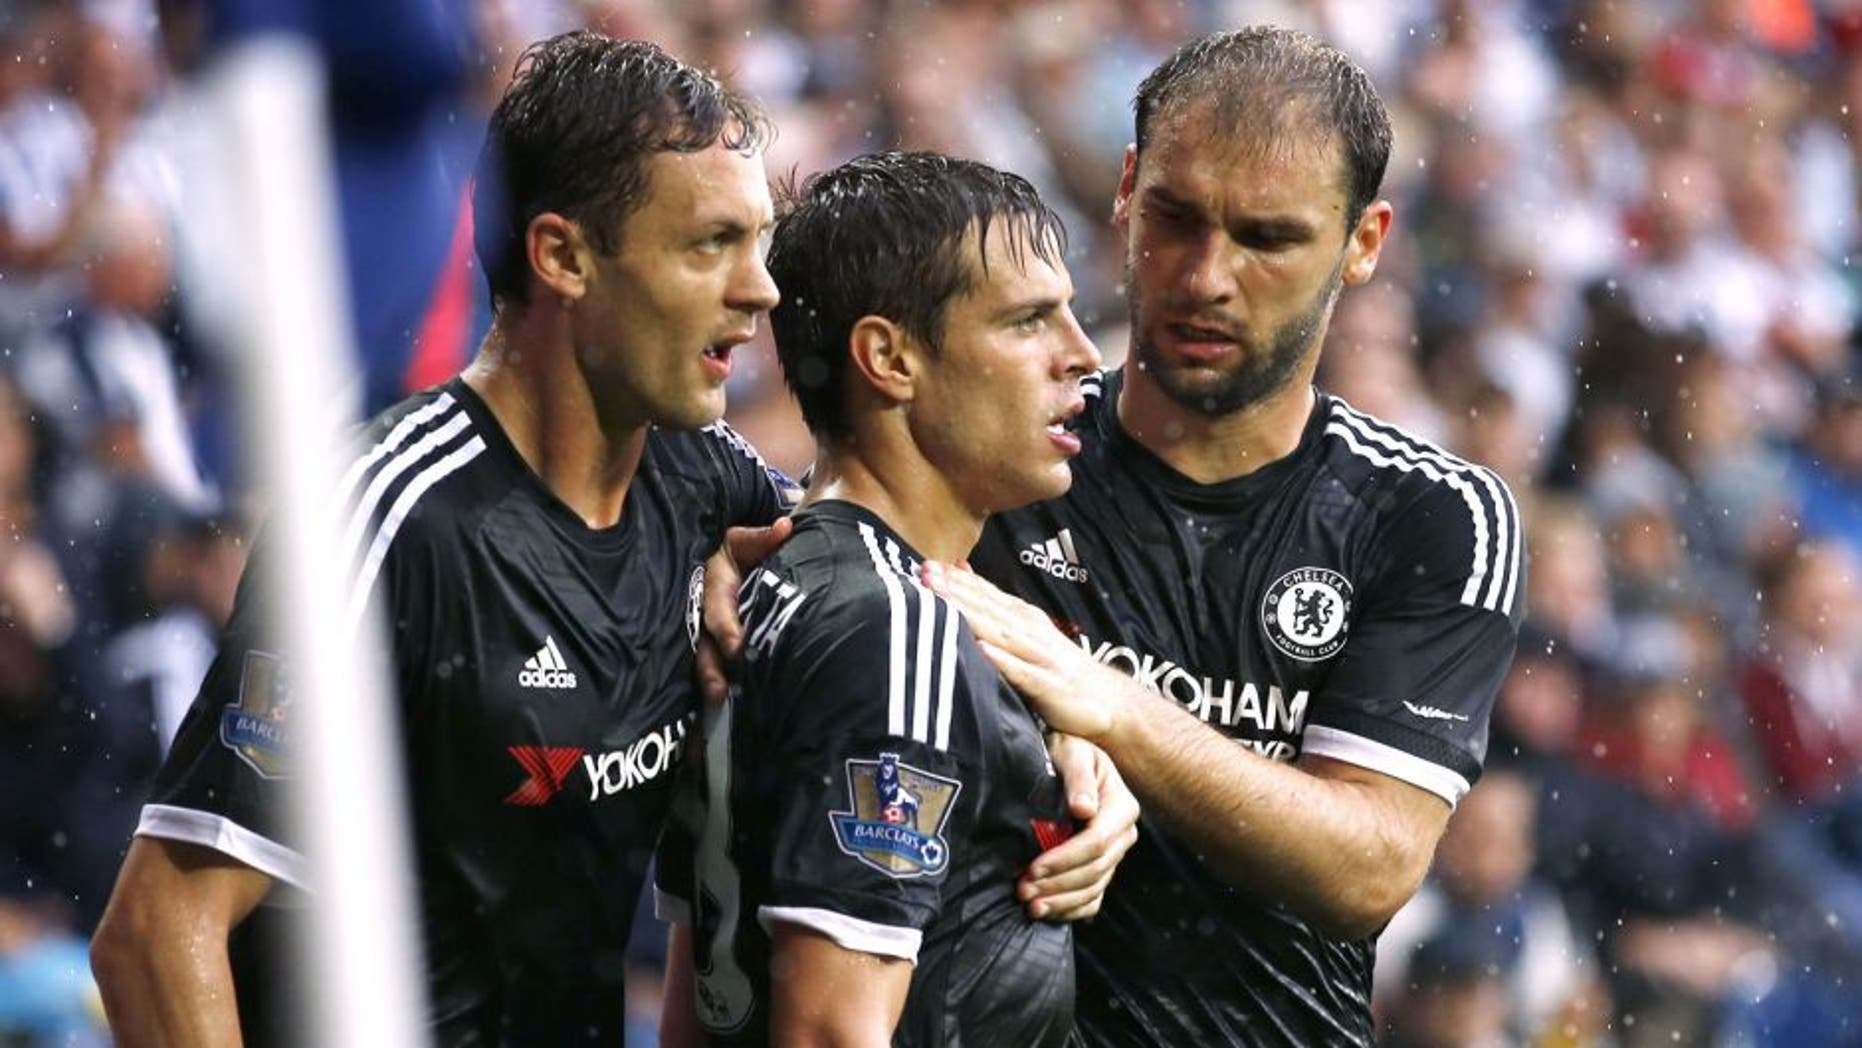 Chelsea's Spanish defender Cesar Azpilicueta (2nd R) celebrates with Chelsea's Serbian midfielder Nemanja Matic and Chelsea's Serbian defender Branislav Ivanovic (R) after scoring their third goal during the English Premier League football match between West Bromwich Albion and Chelsea at The Hawthorns in West Bromwich, central England on August 23, 2015. AFP PHOTO / JUSTIN TALLIS RESTRICTED TO EDITORIAL USE. No use with unauthorized audio, video, data, fixture lists, club/league logos or 'live' services. Online in-match use limited to 75 images, no video emulation. No use in betting, games or single club/league/player publications. (Photo credit should read JUSTIN TALLIS/AFP/Getty Images)